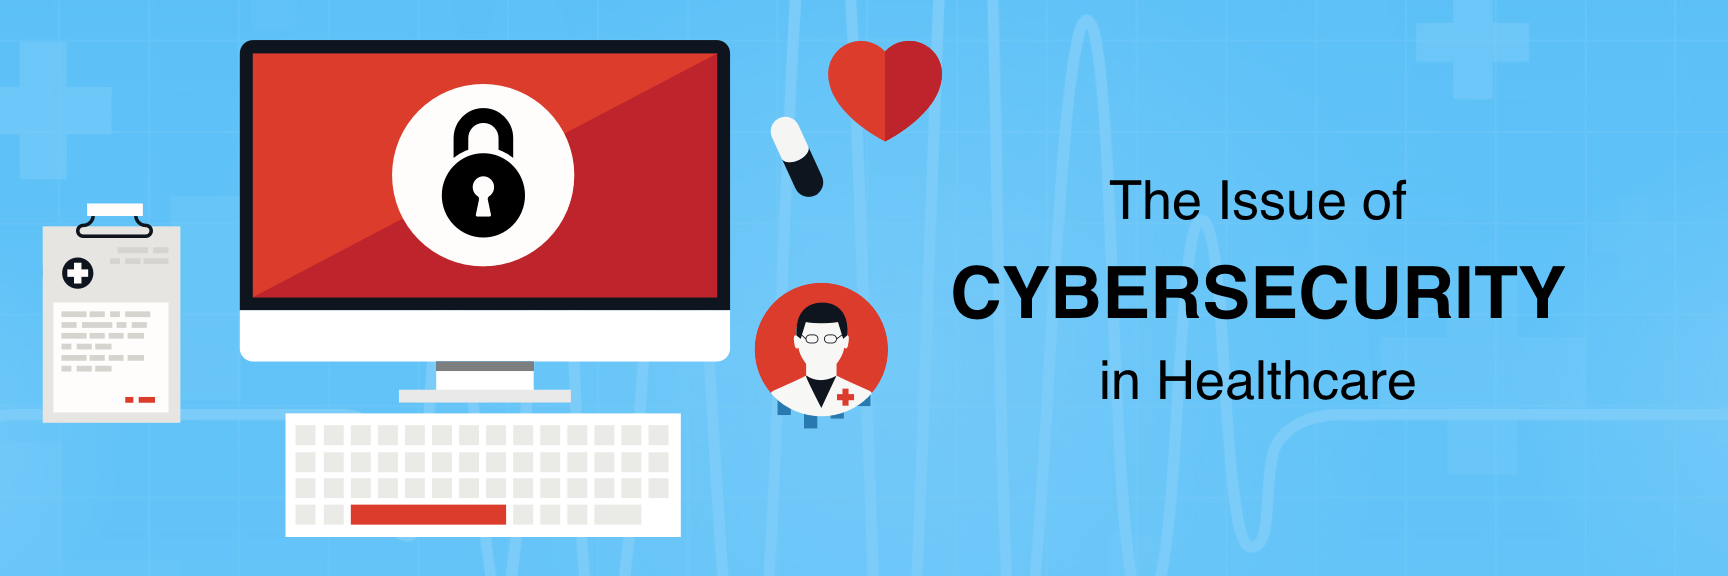 the issue of cybersecurity in healthcare